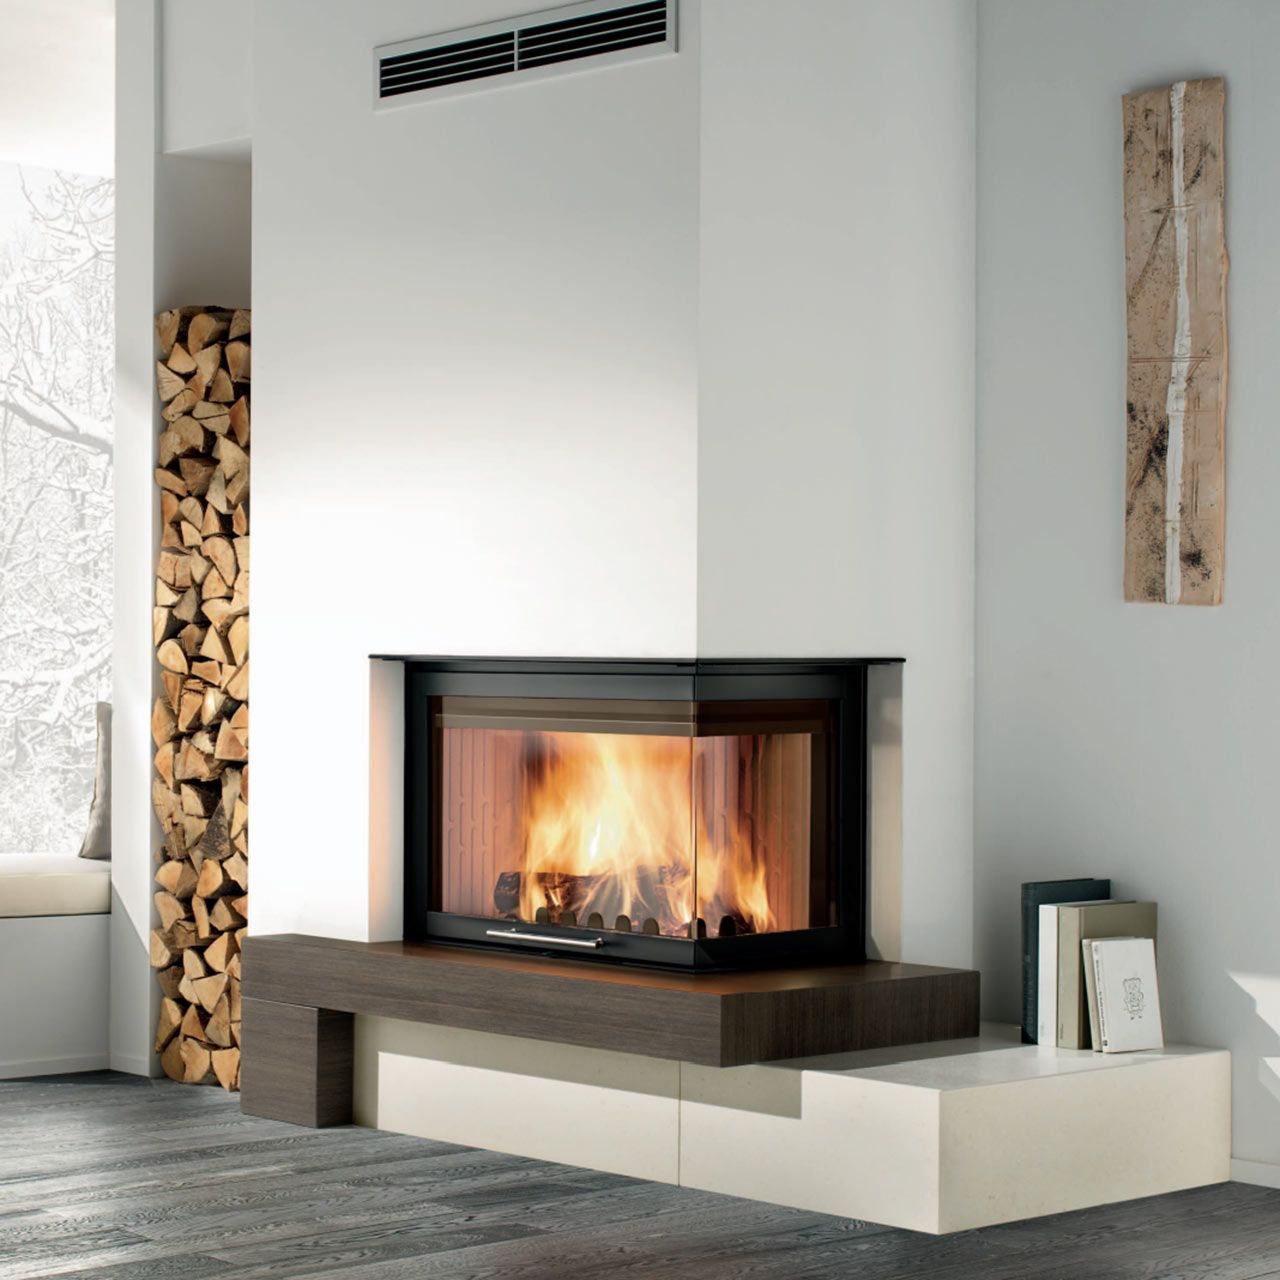 Pin by Marina Charitopoulou Design on Fireplace | Pinterest | Fire ...